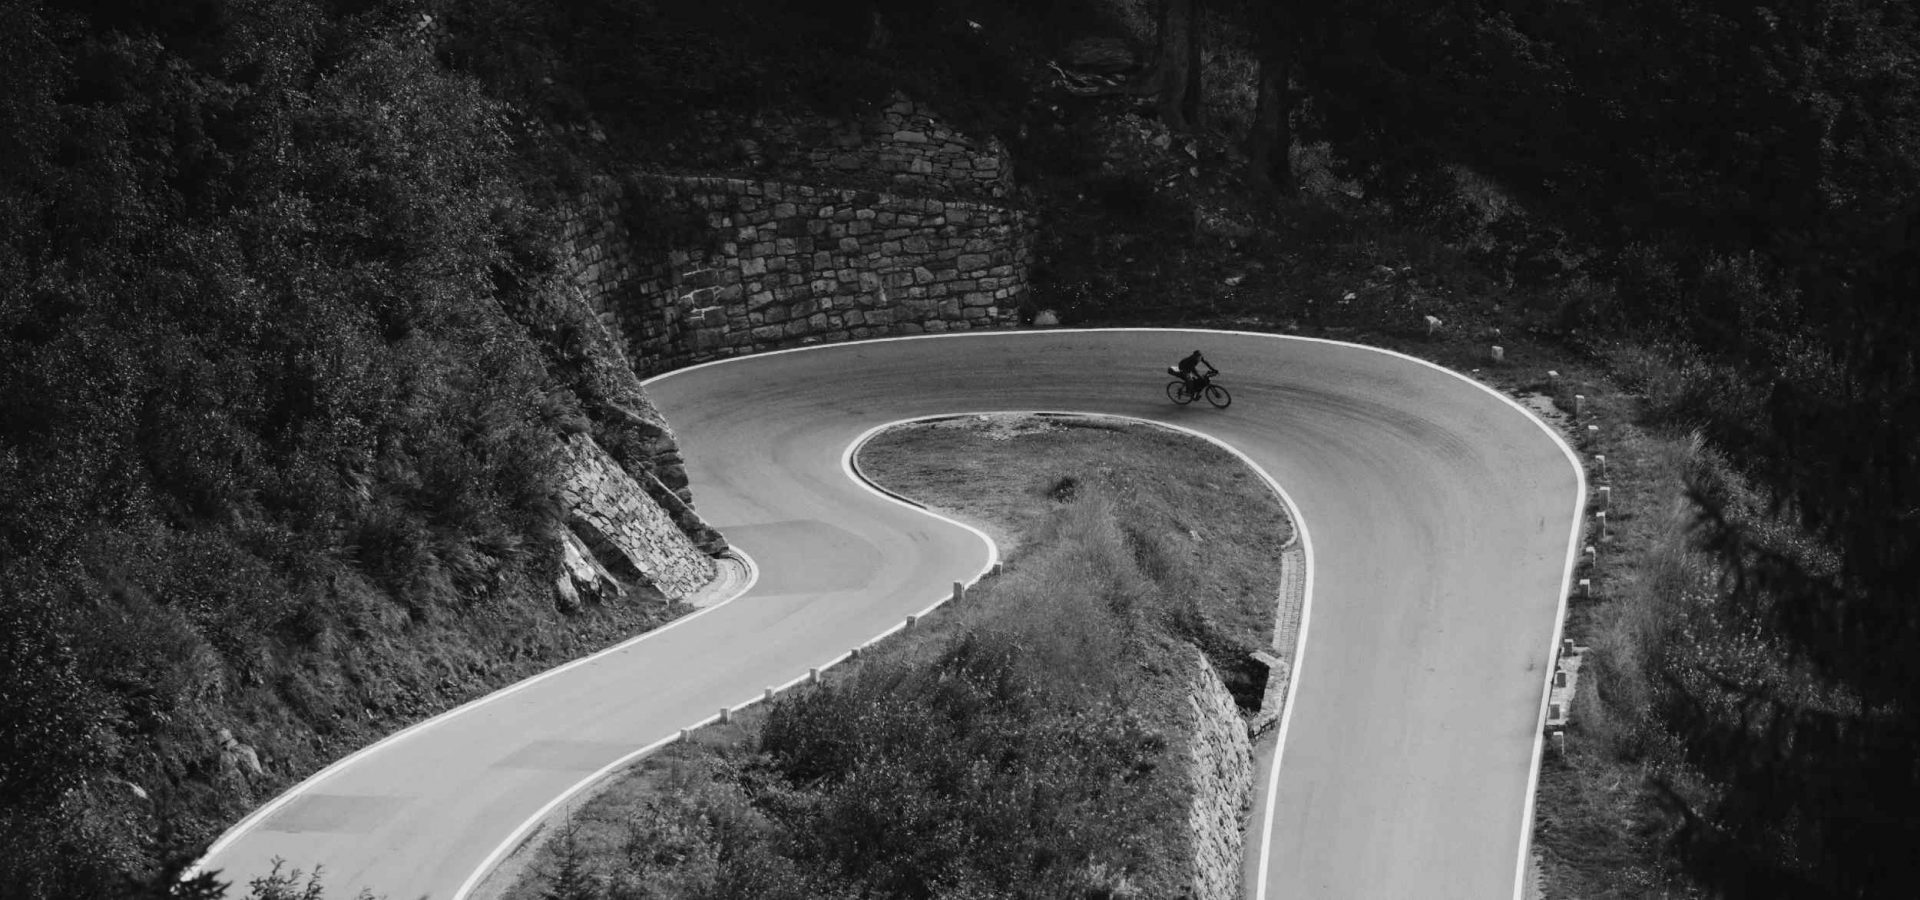 A cyclist racing around a hairpin